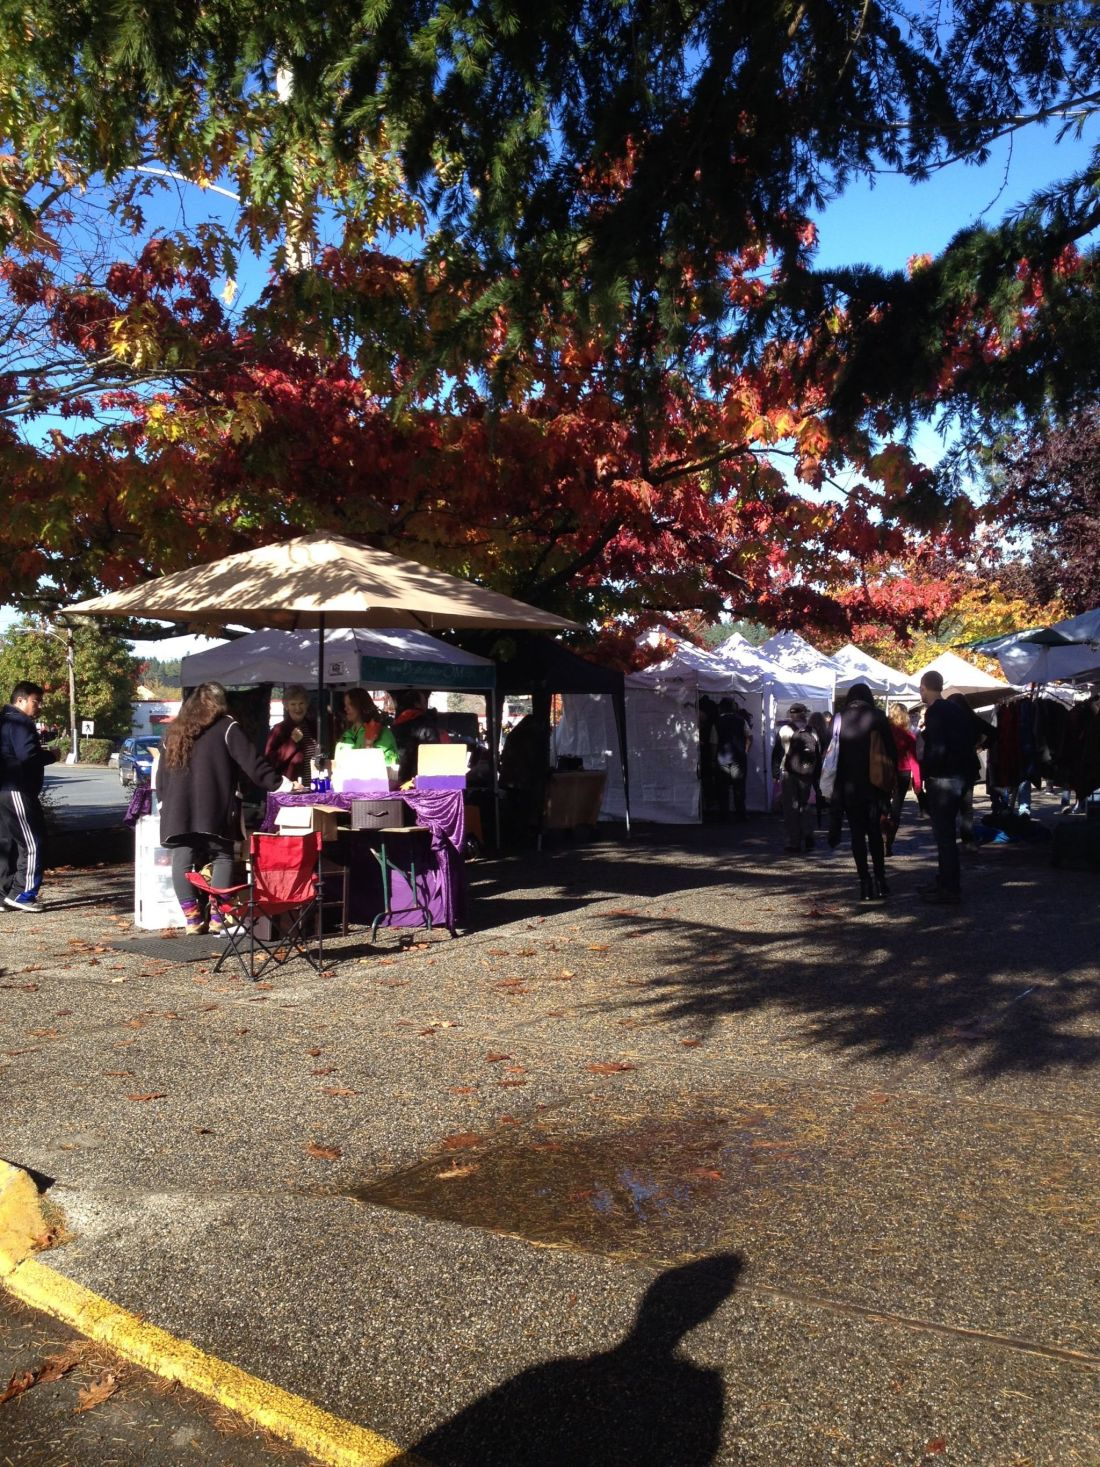 Market stalls in the fall on Salt Spring Island